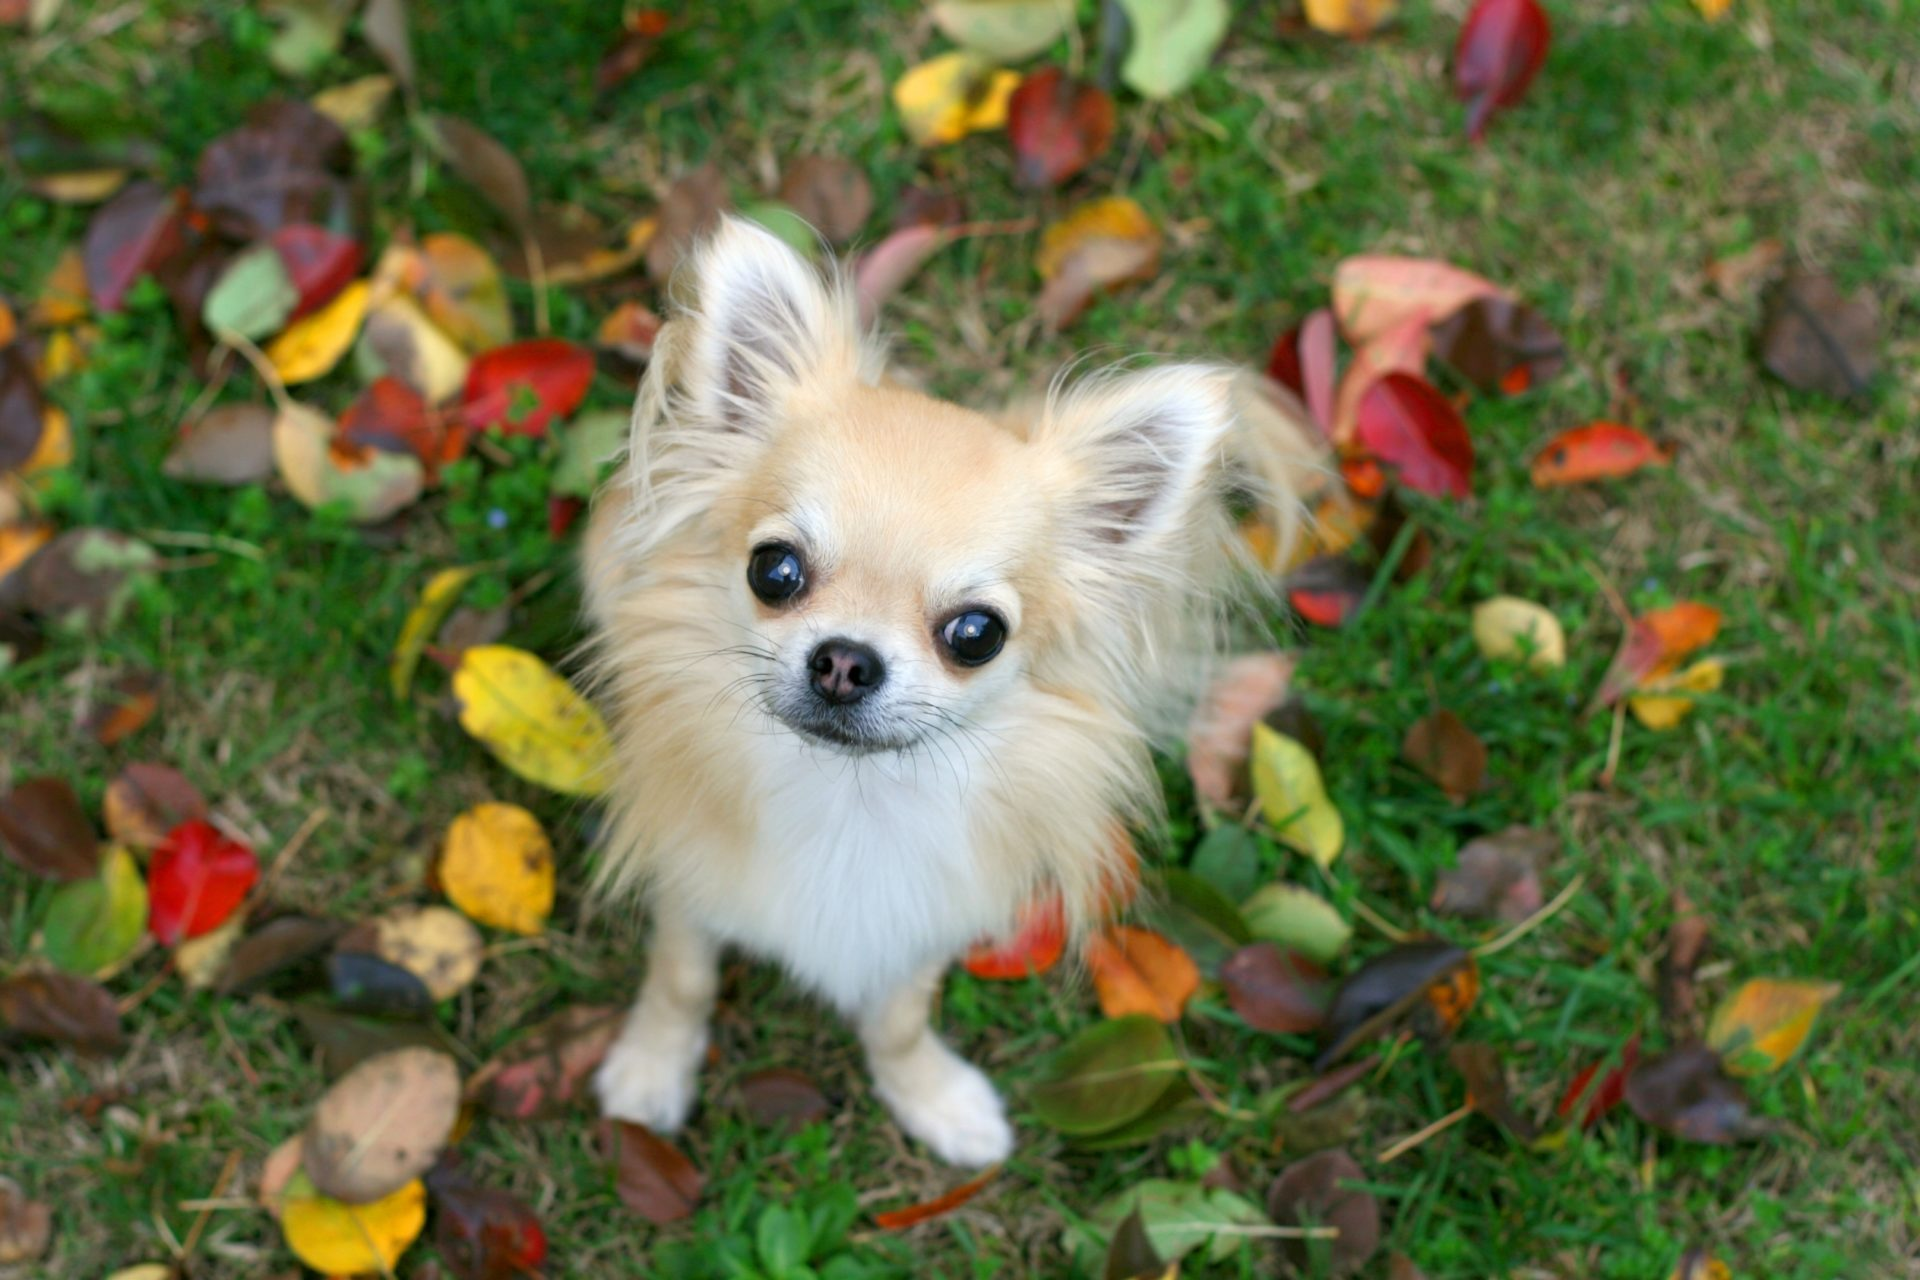 What You Need To Know About Chihuahuas